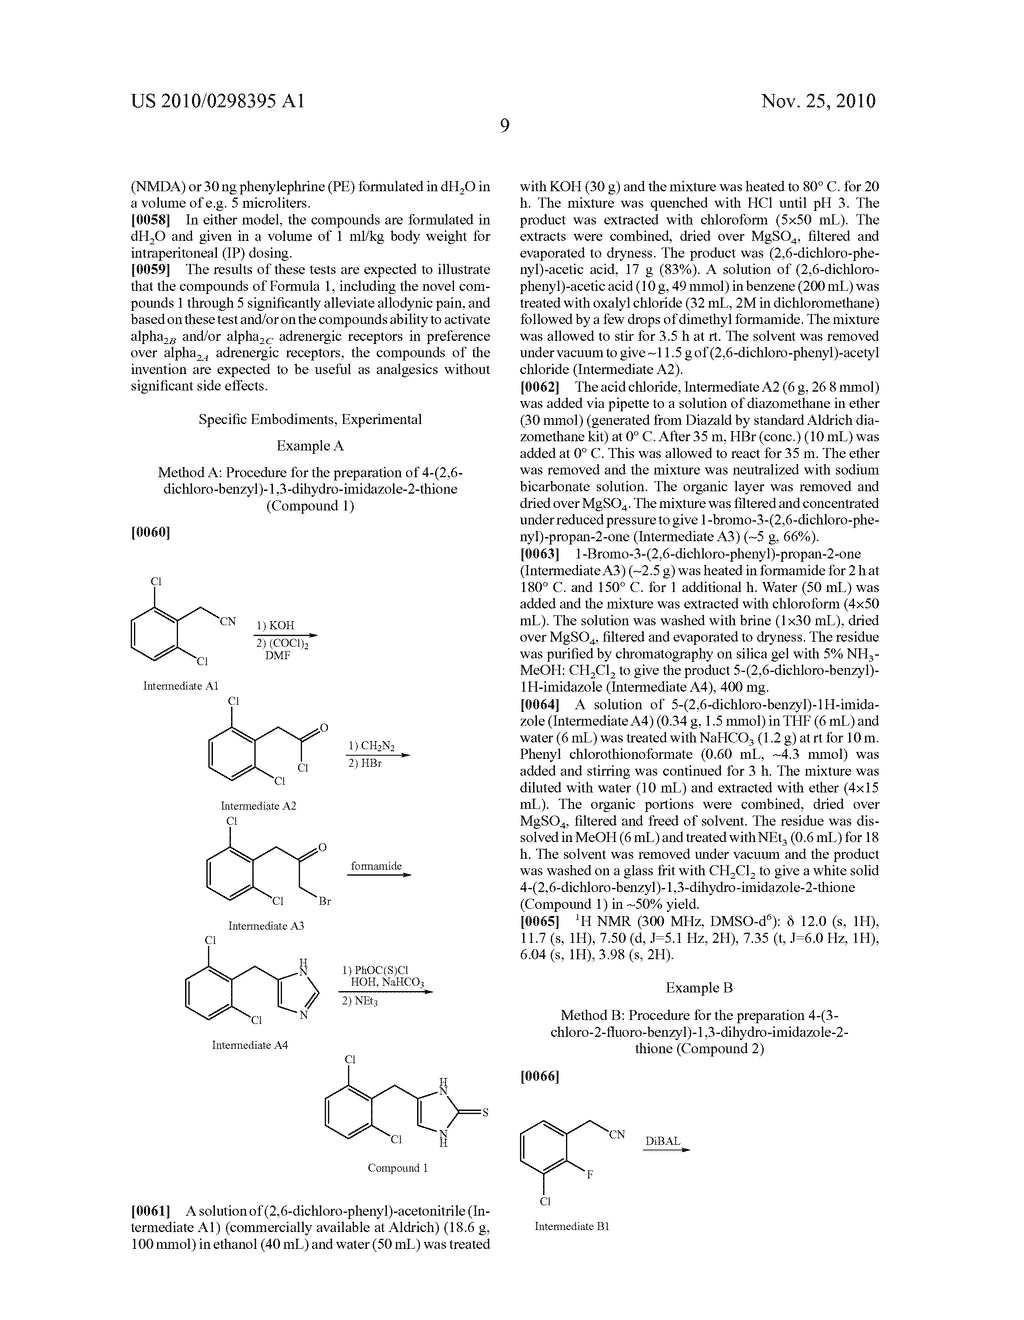 UNSUBSTITUTED AND SUBSTITUTED 4-BENZYL-1,3-DIHYDRO-IMIDAZOLE-2-THIONES ACTING AS SPECIFIC OR SELECTIVE ALPHA2 ADRENERGIC AGONISTS AND METHODS FOR USING THE SAME - diagram, schematic, and image 10